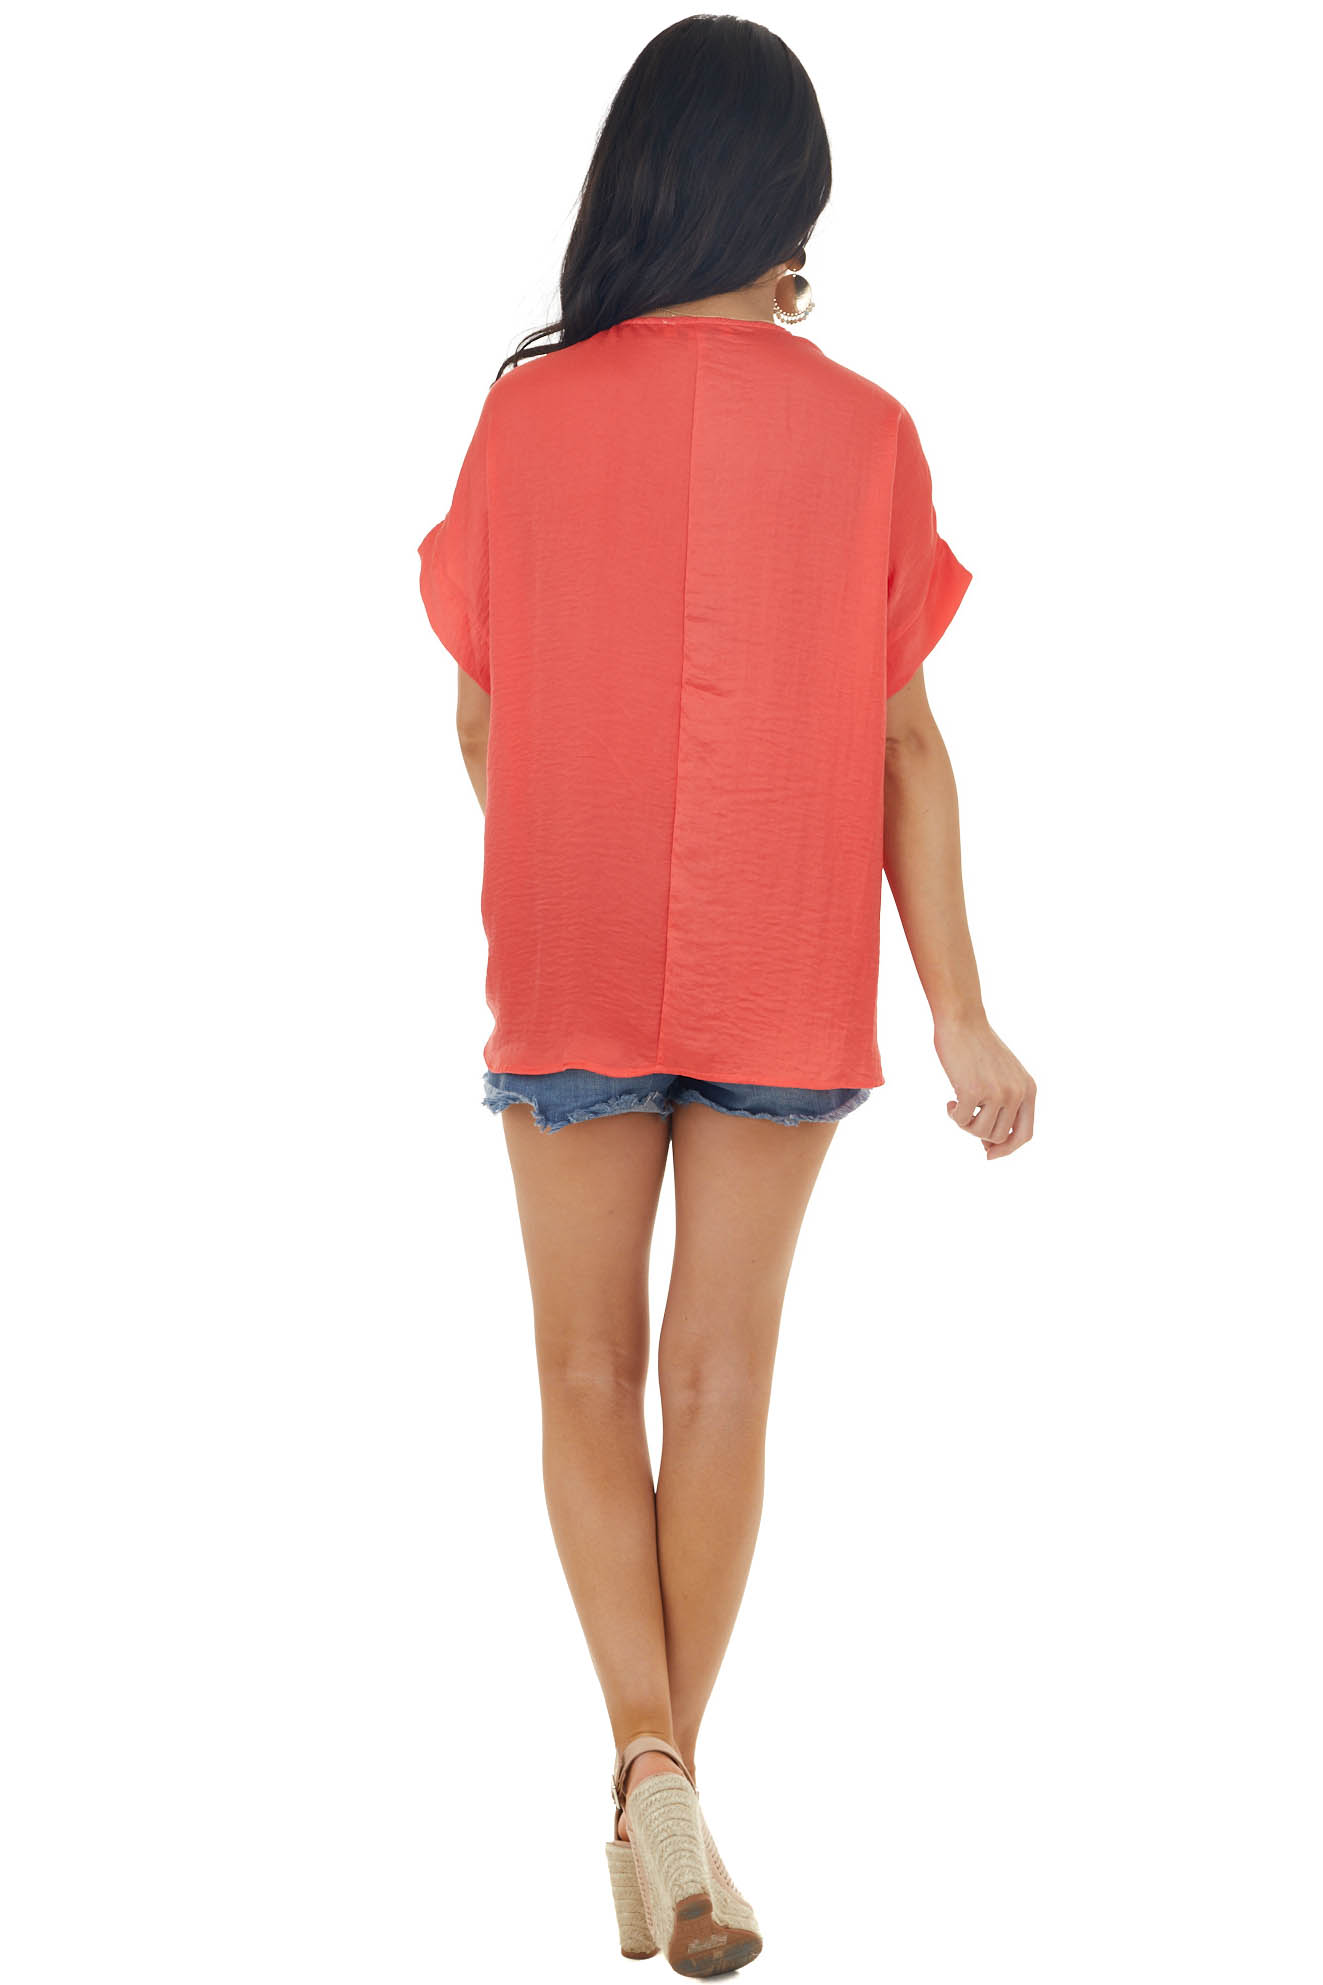 Lipstick Red Silky Short Sleeve Woven Blouse with V Neckline